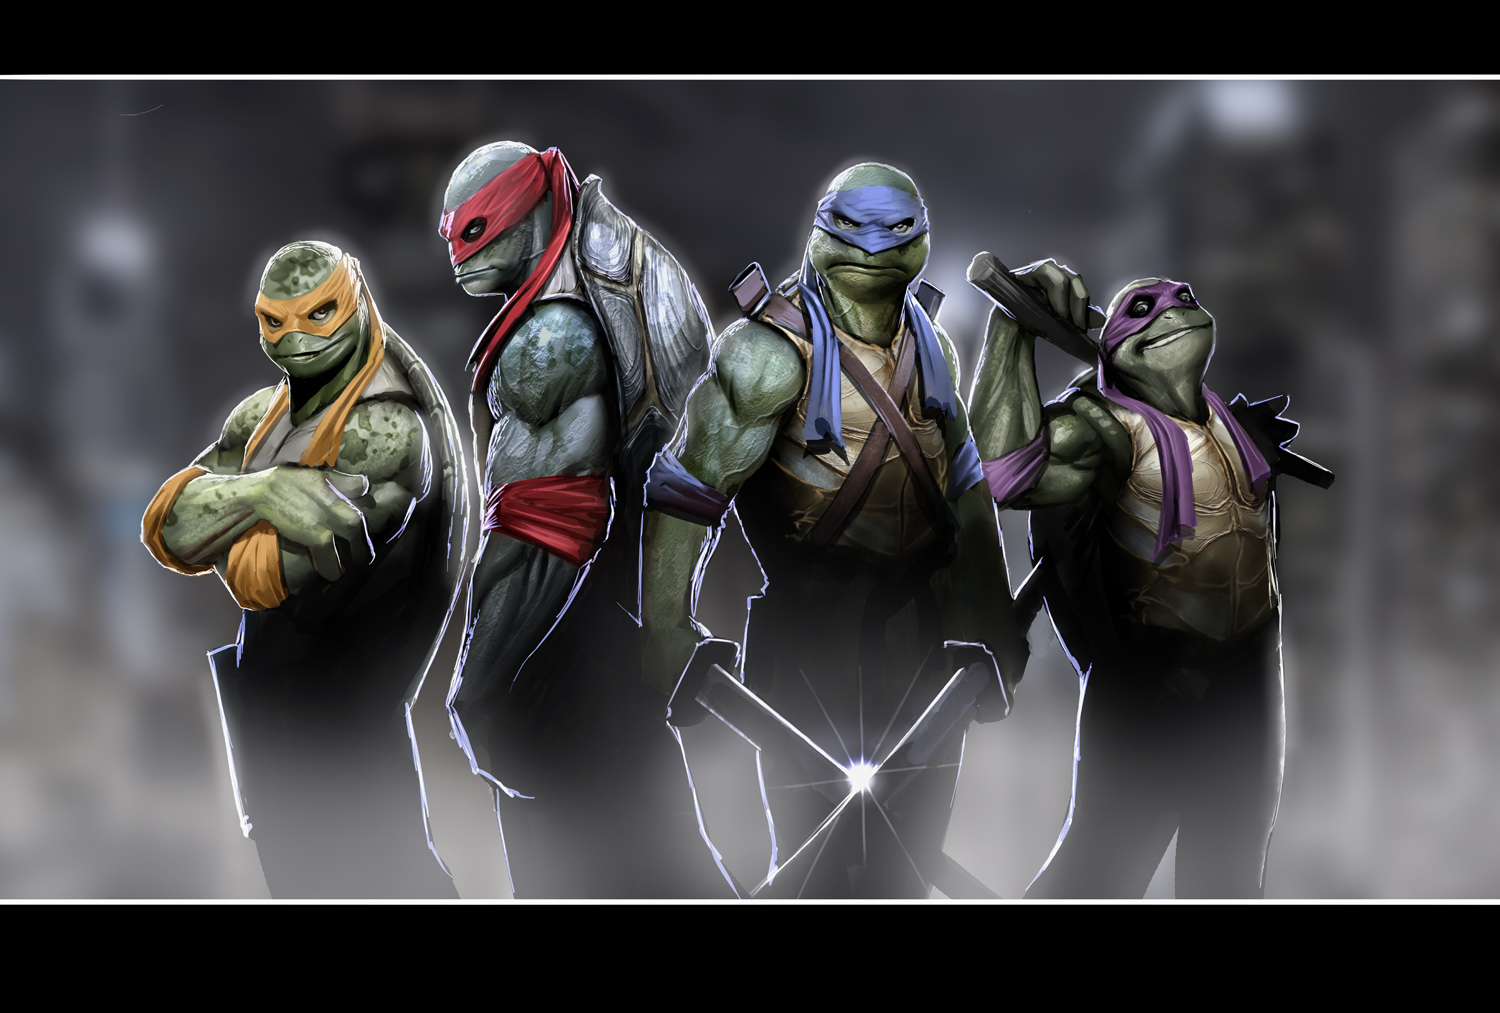 Ninja Turtles Movie Release Date June 2014 Hero TV